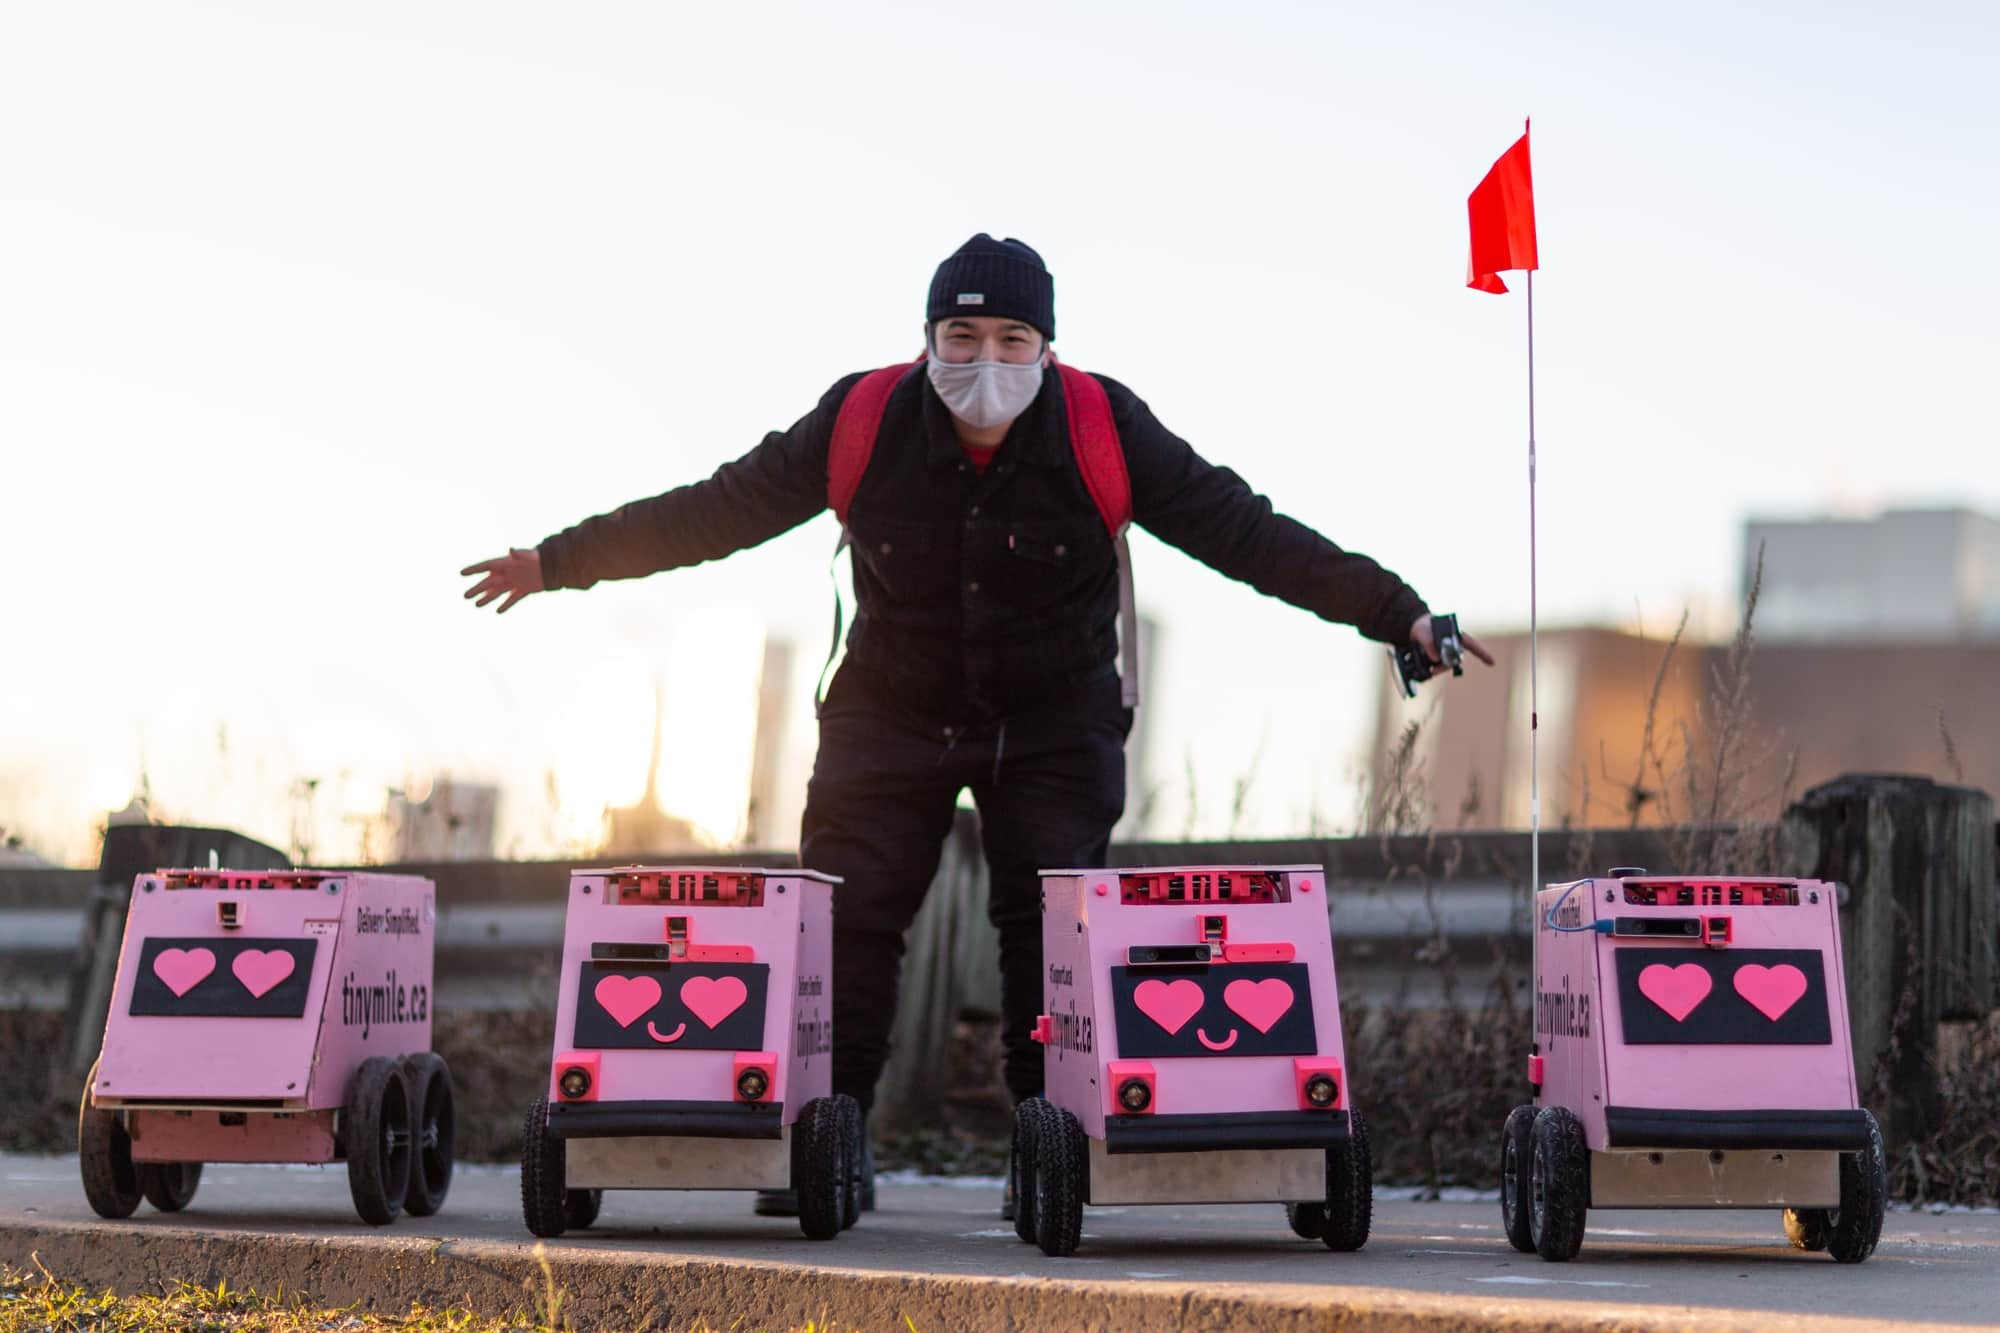 Toronto's cute pink delivery robots